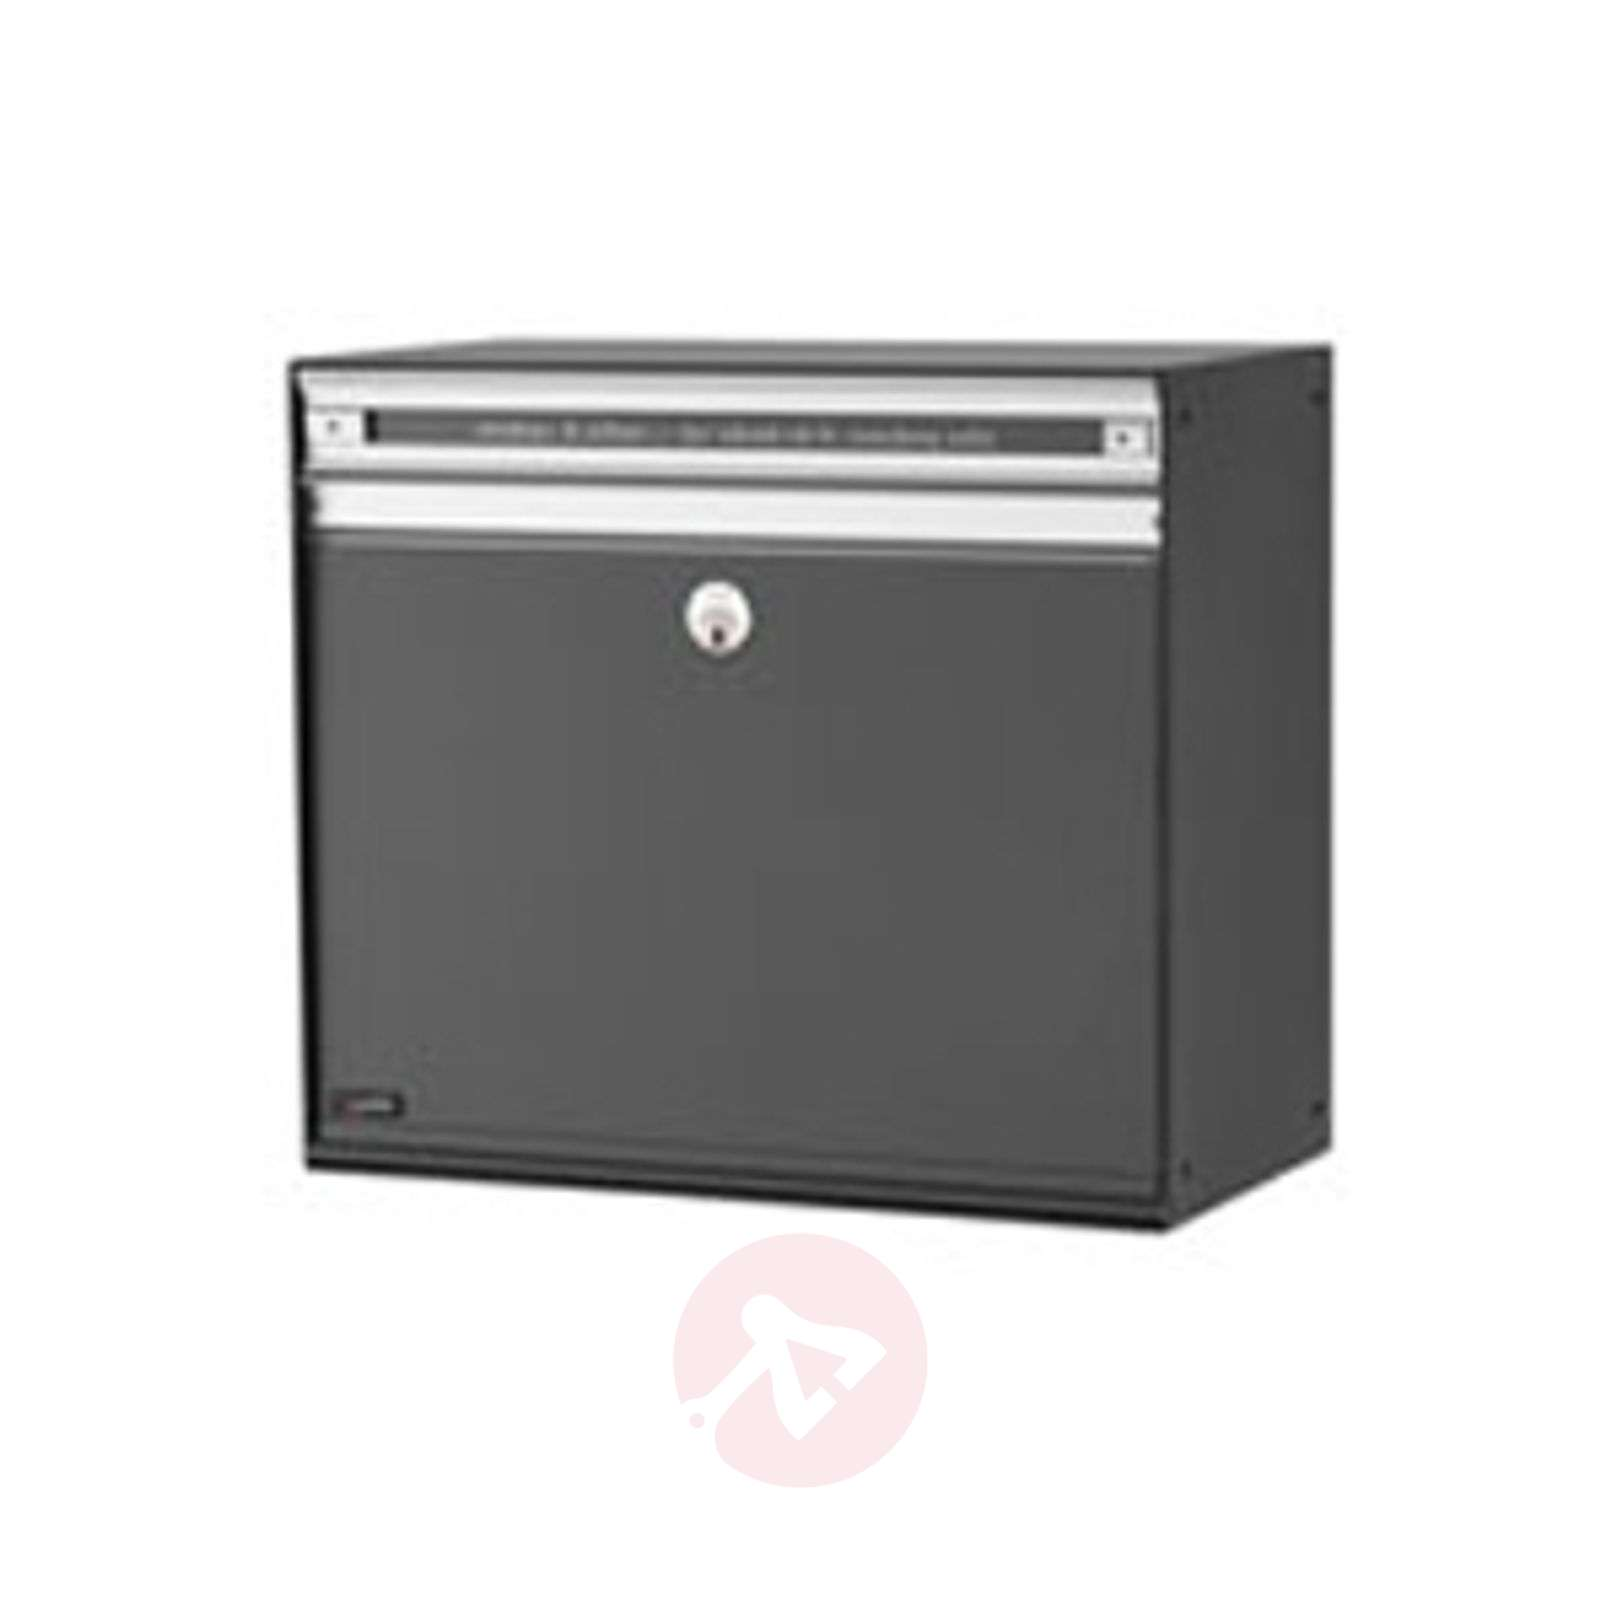 Spacious letterbox SC200 with aluminium slot-1045054X-01